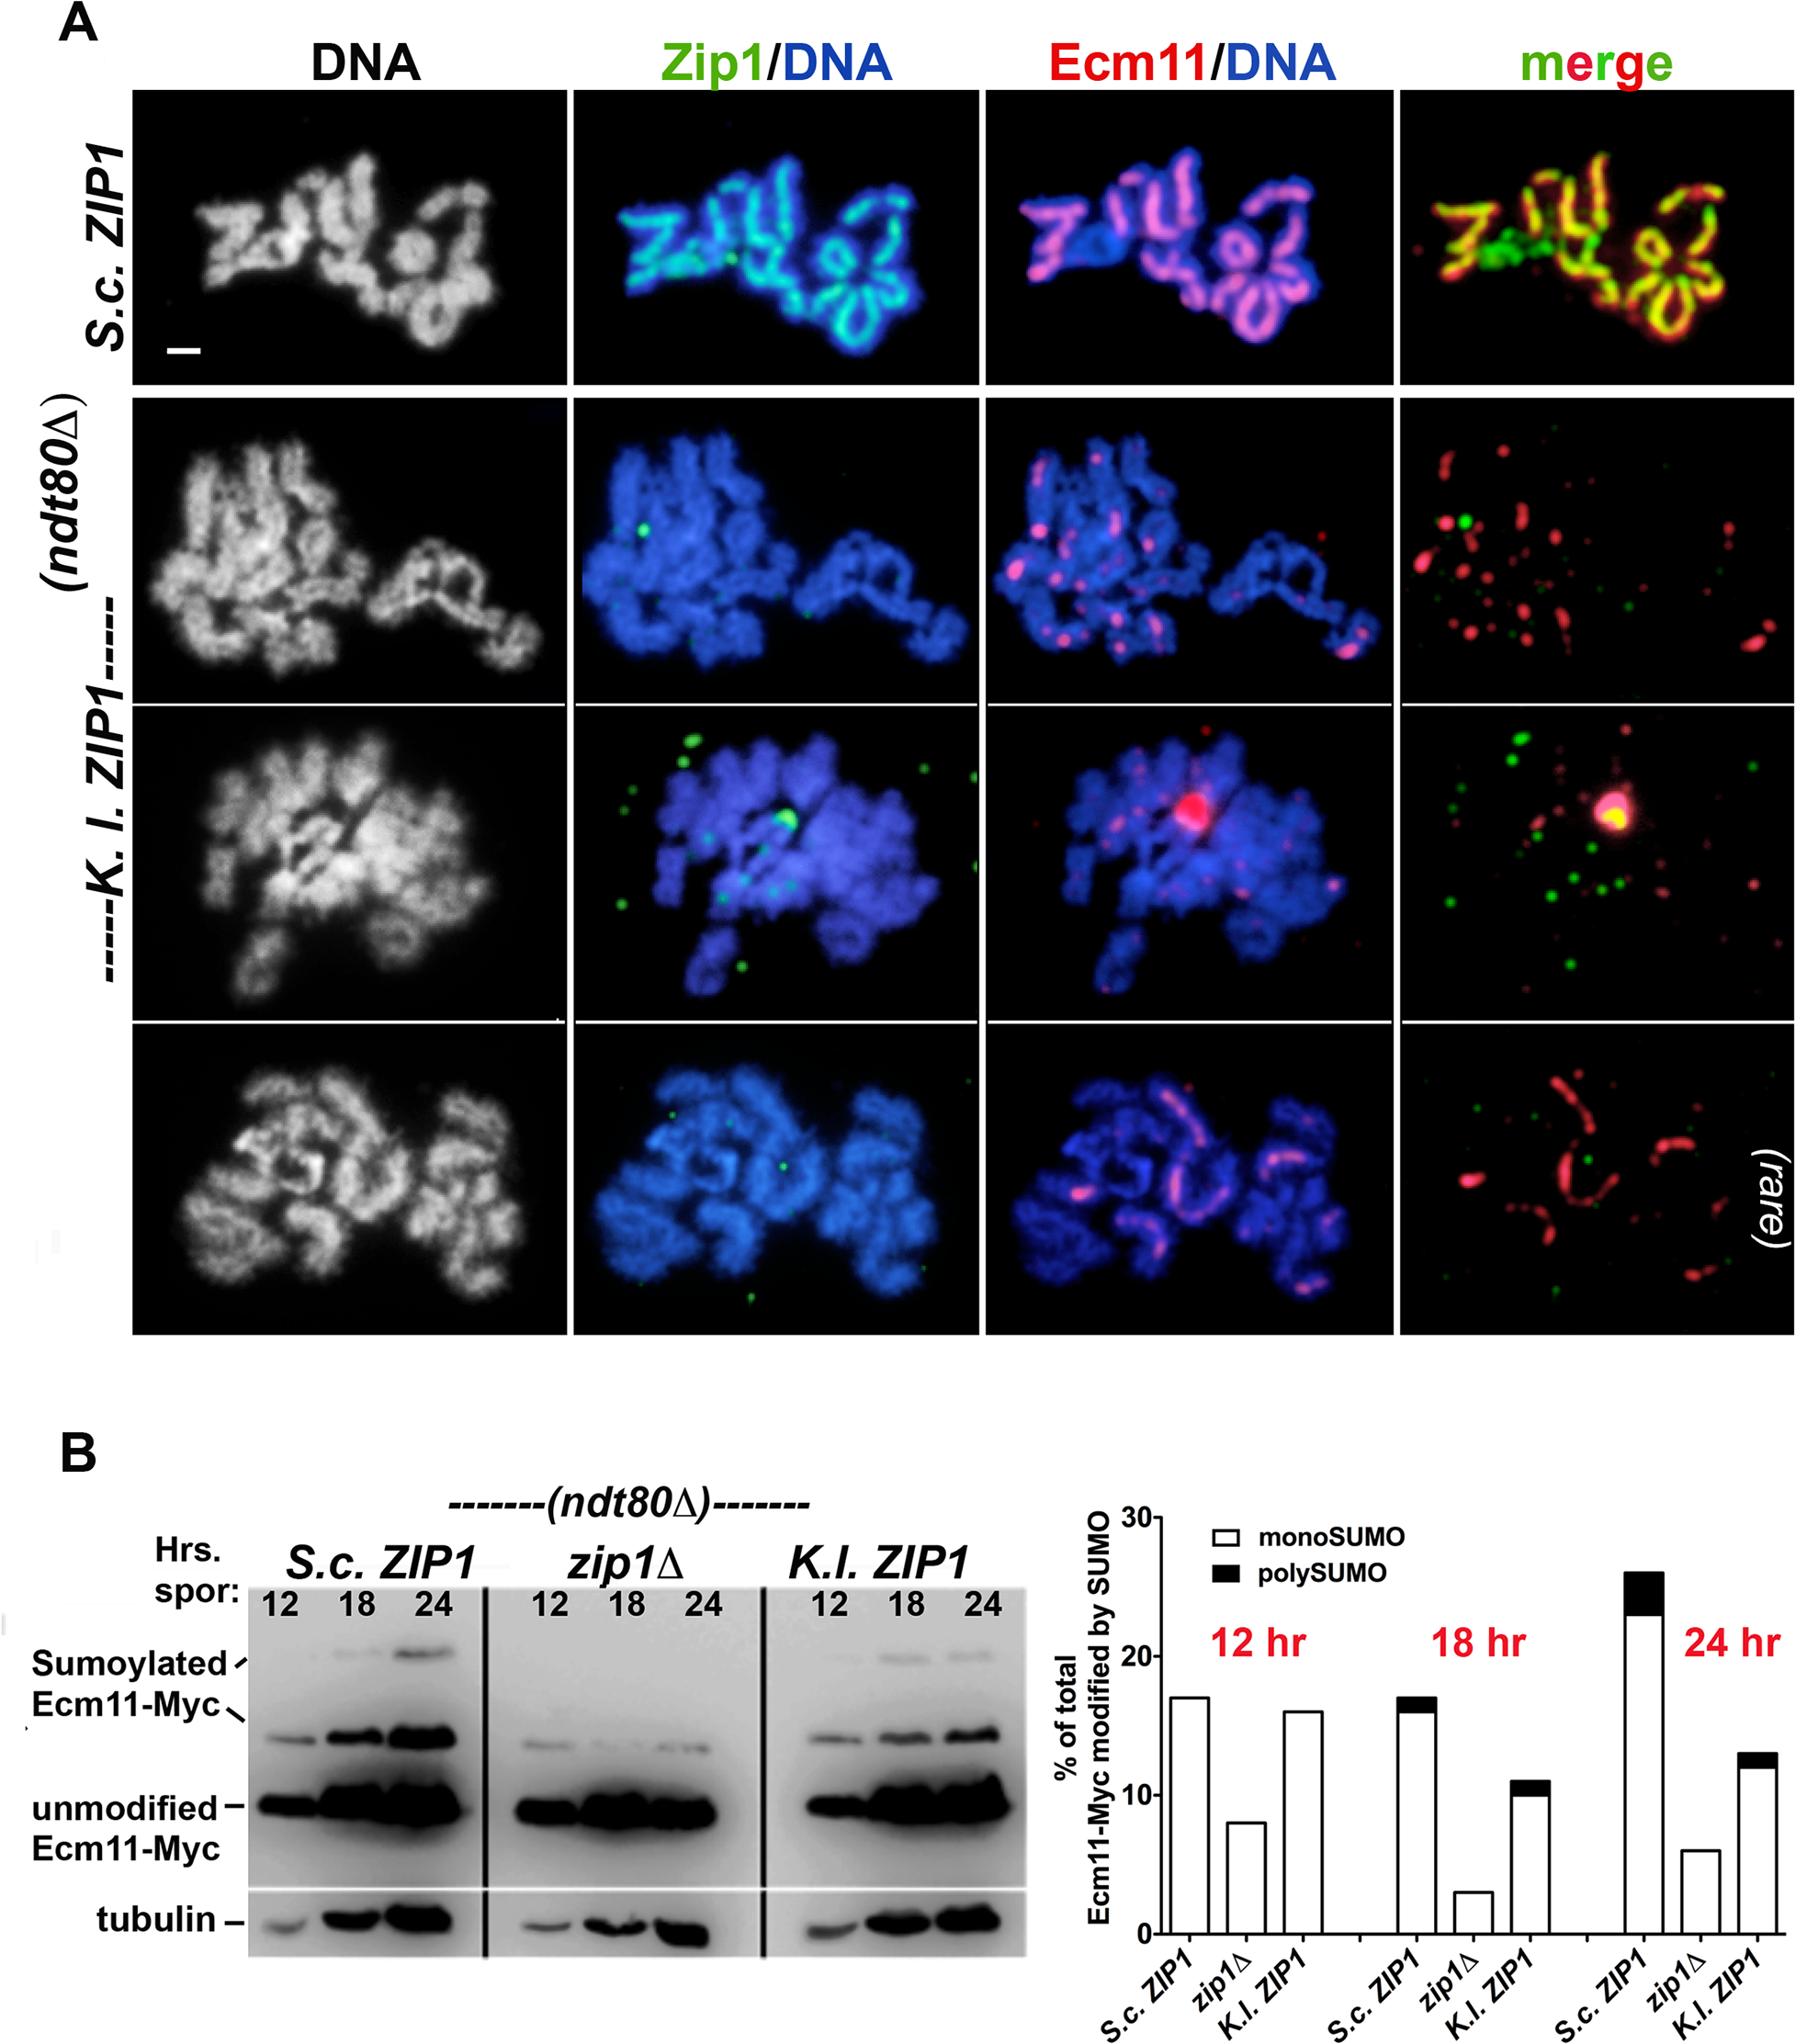 Ecm11-MYC predominantly assembles as foci on meiotic chromosomes and is partially SUMOylated in <i>S</i>. <i>cerevisiae</i> cells expressing <i>K</i>. <i>lactis ZIP1</i>.